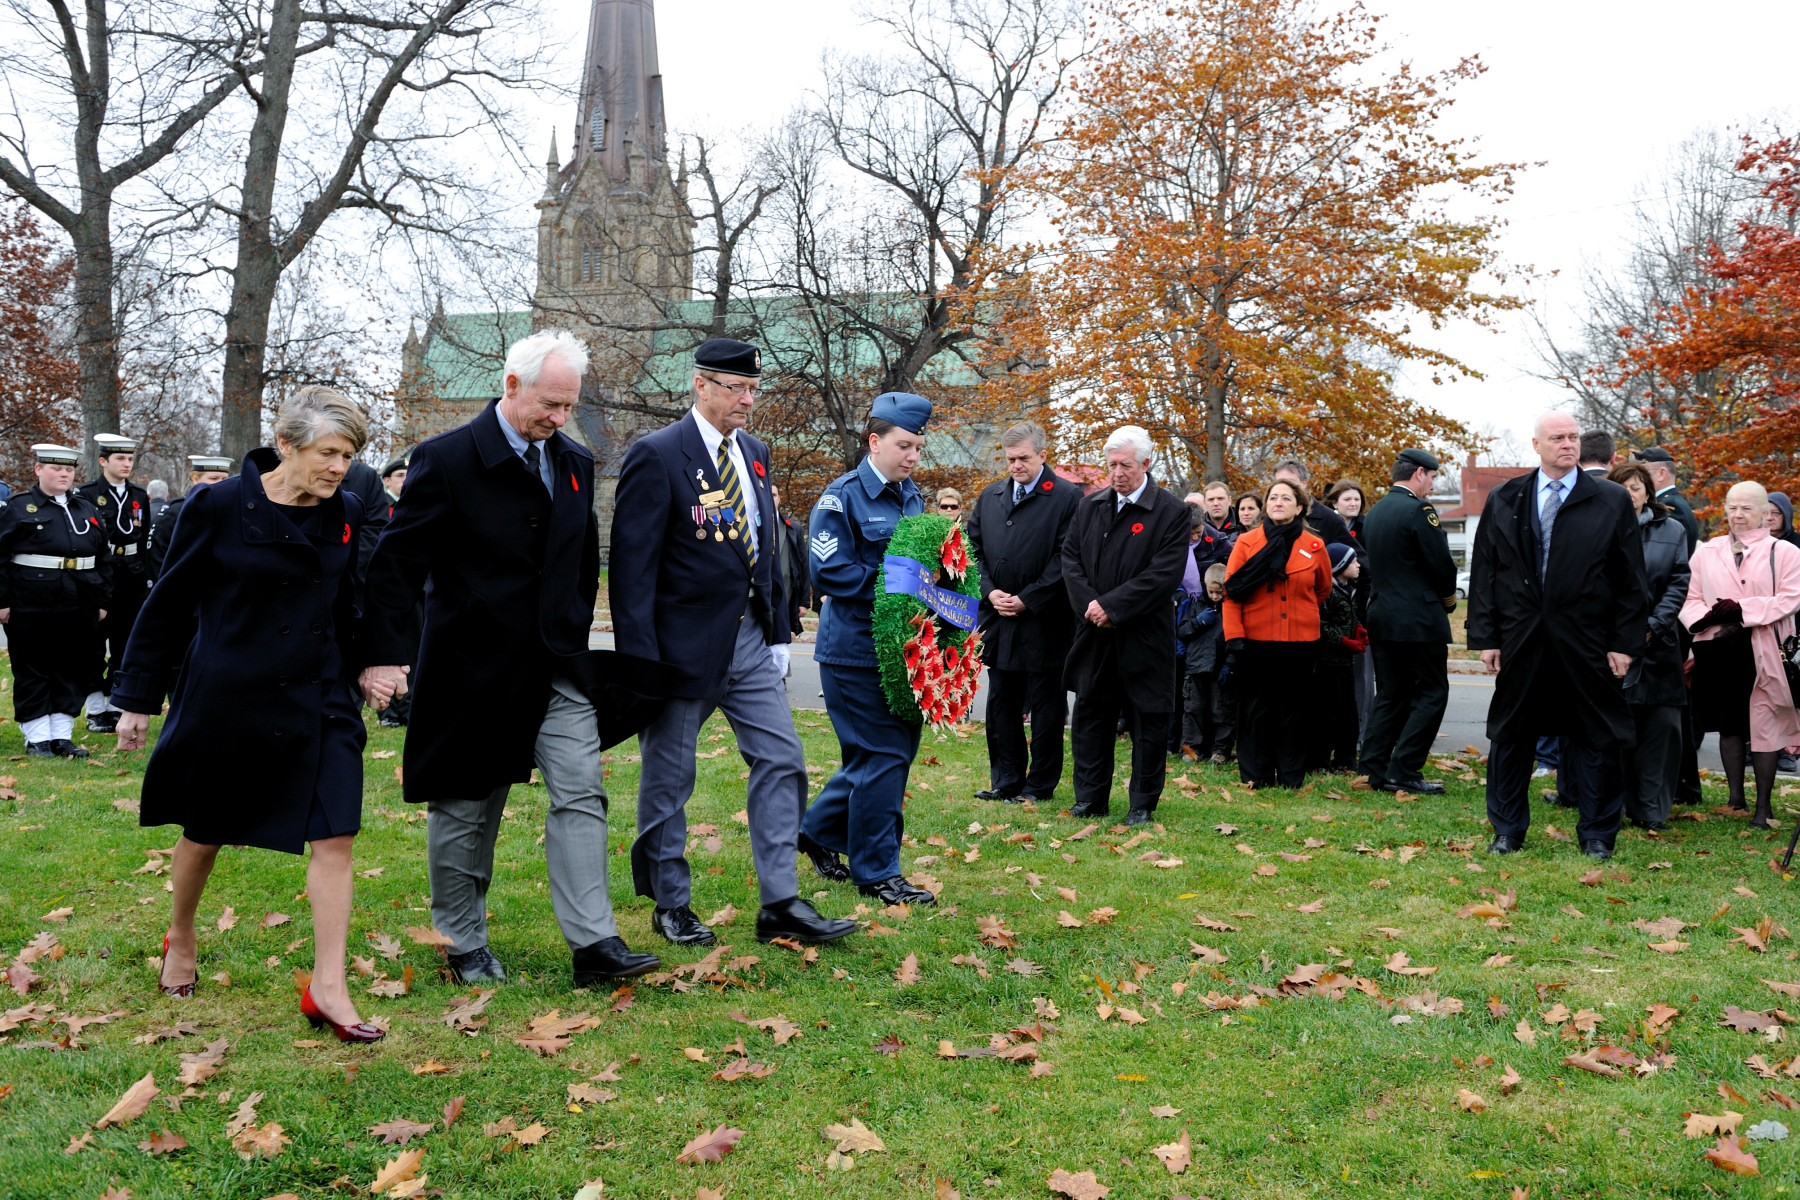 The wreath was laid on behalf of the people of Canada.